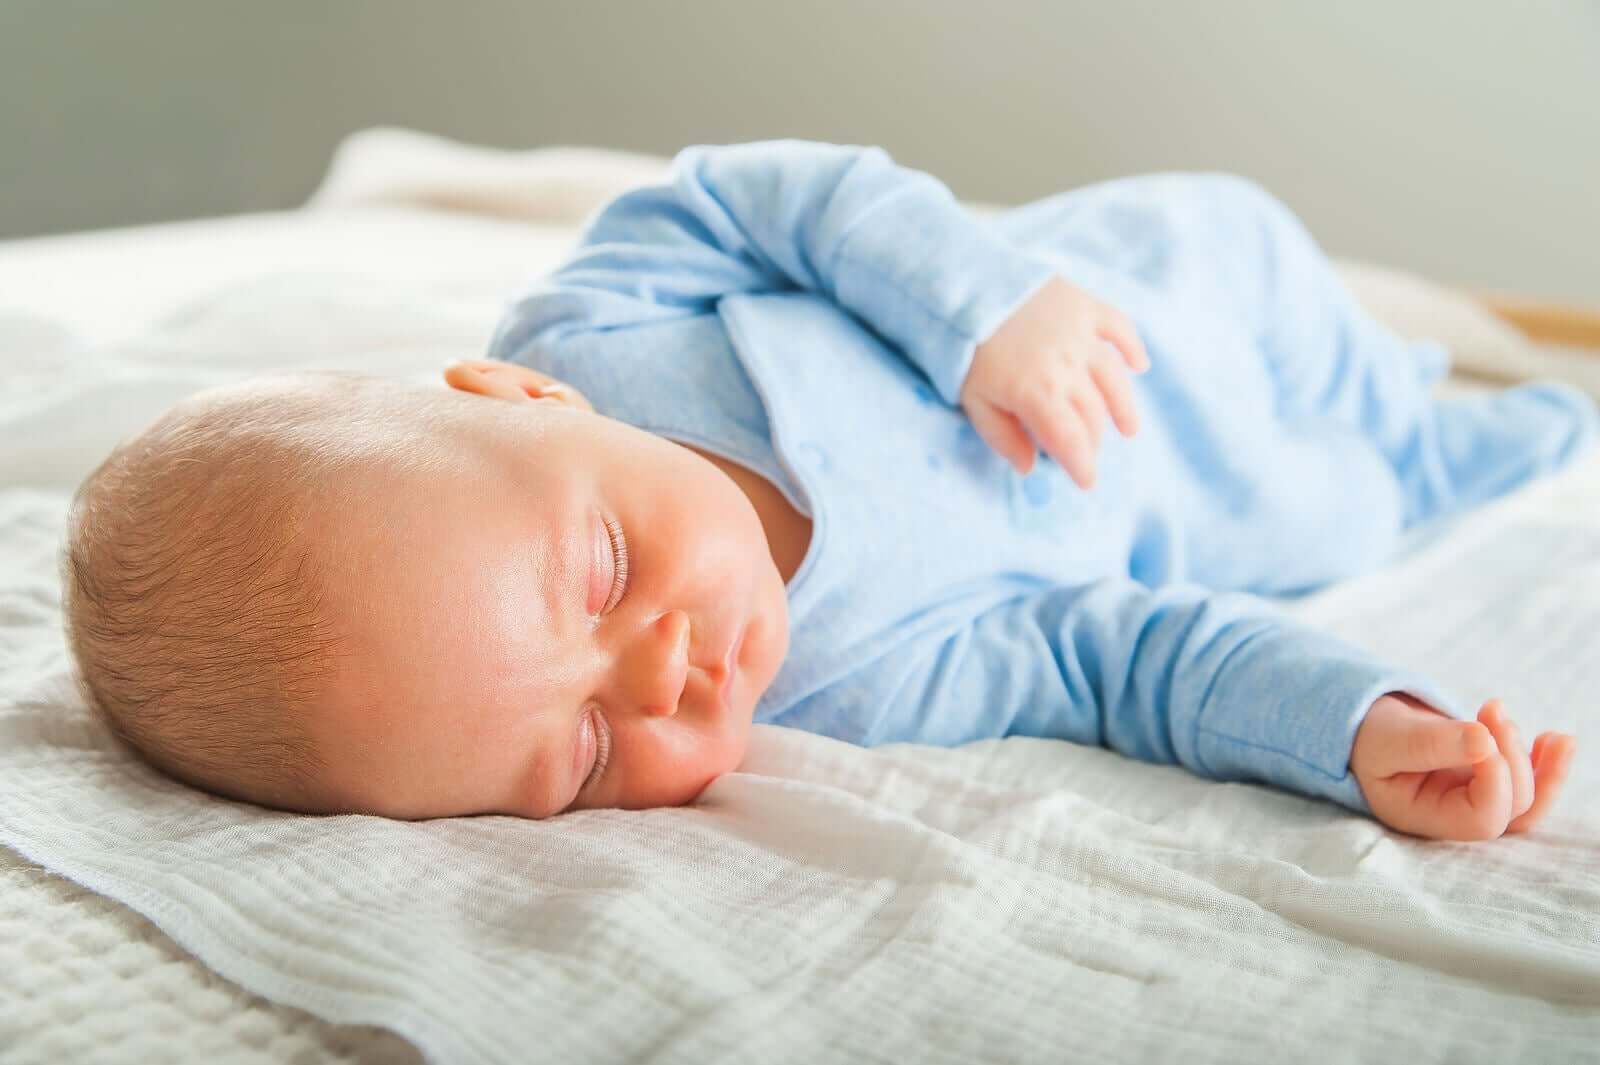 Differences Between Sleep Cycles in Children vs. Adults